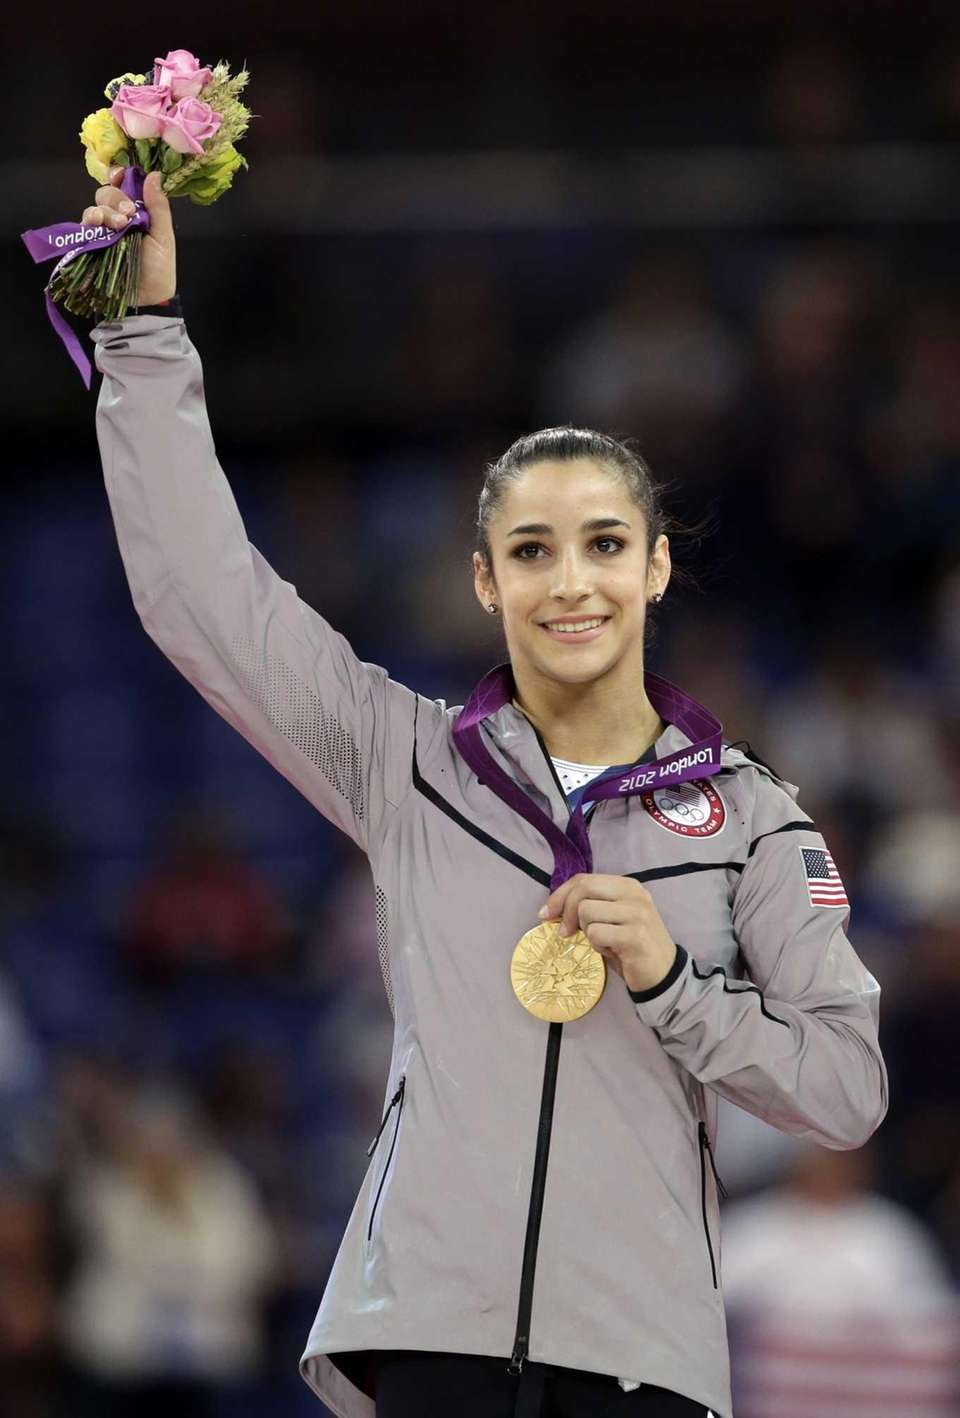 Aly Raisman, gold medal-winning Olympic gymnast who left